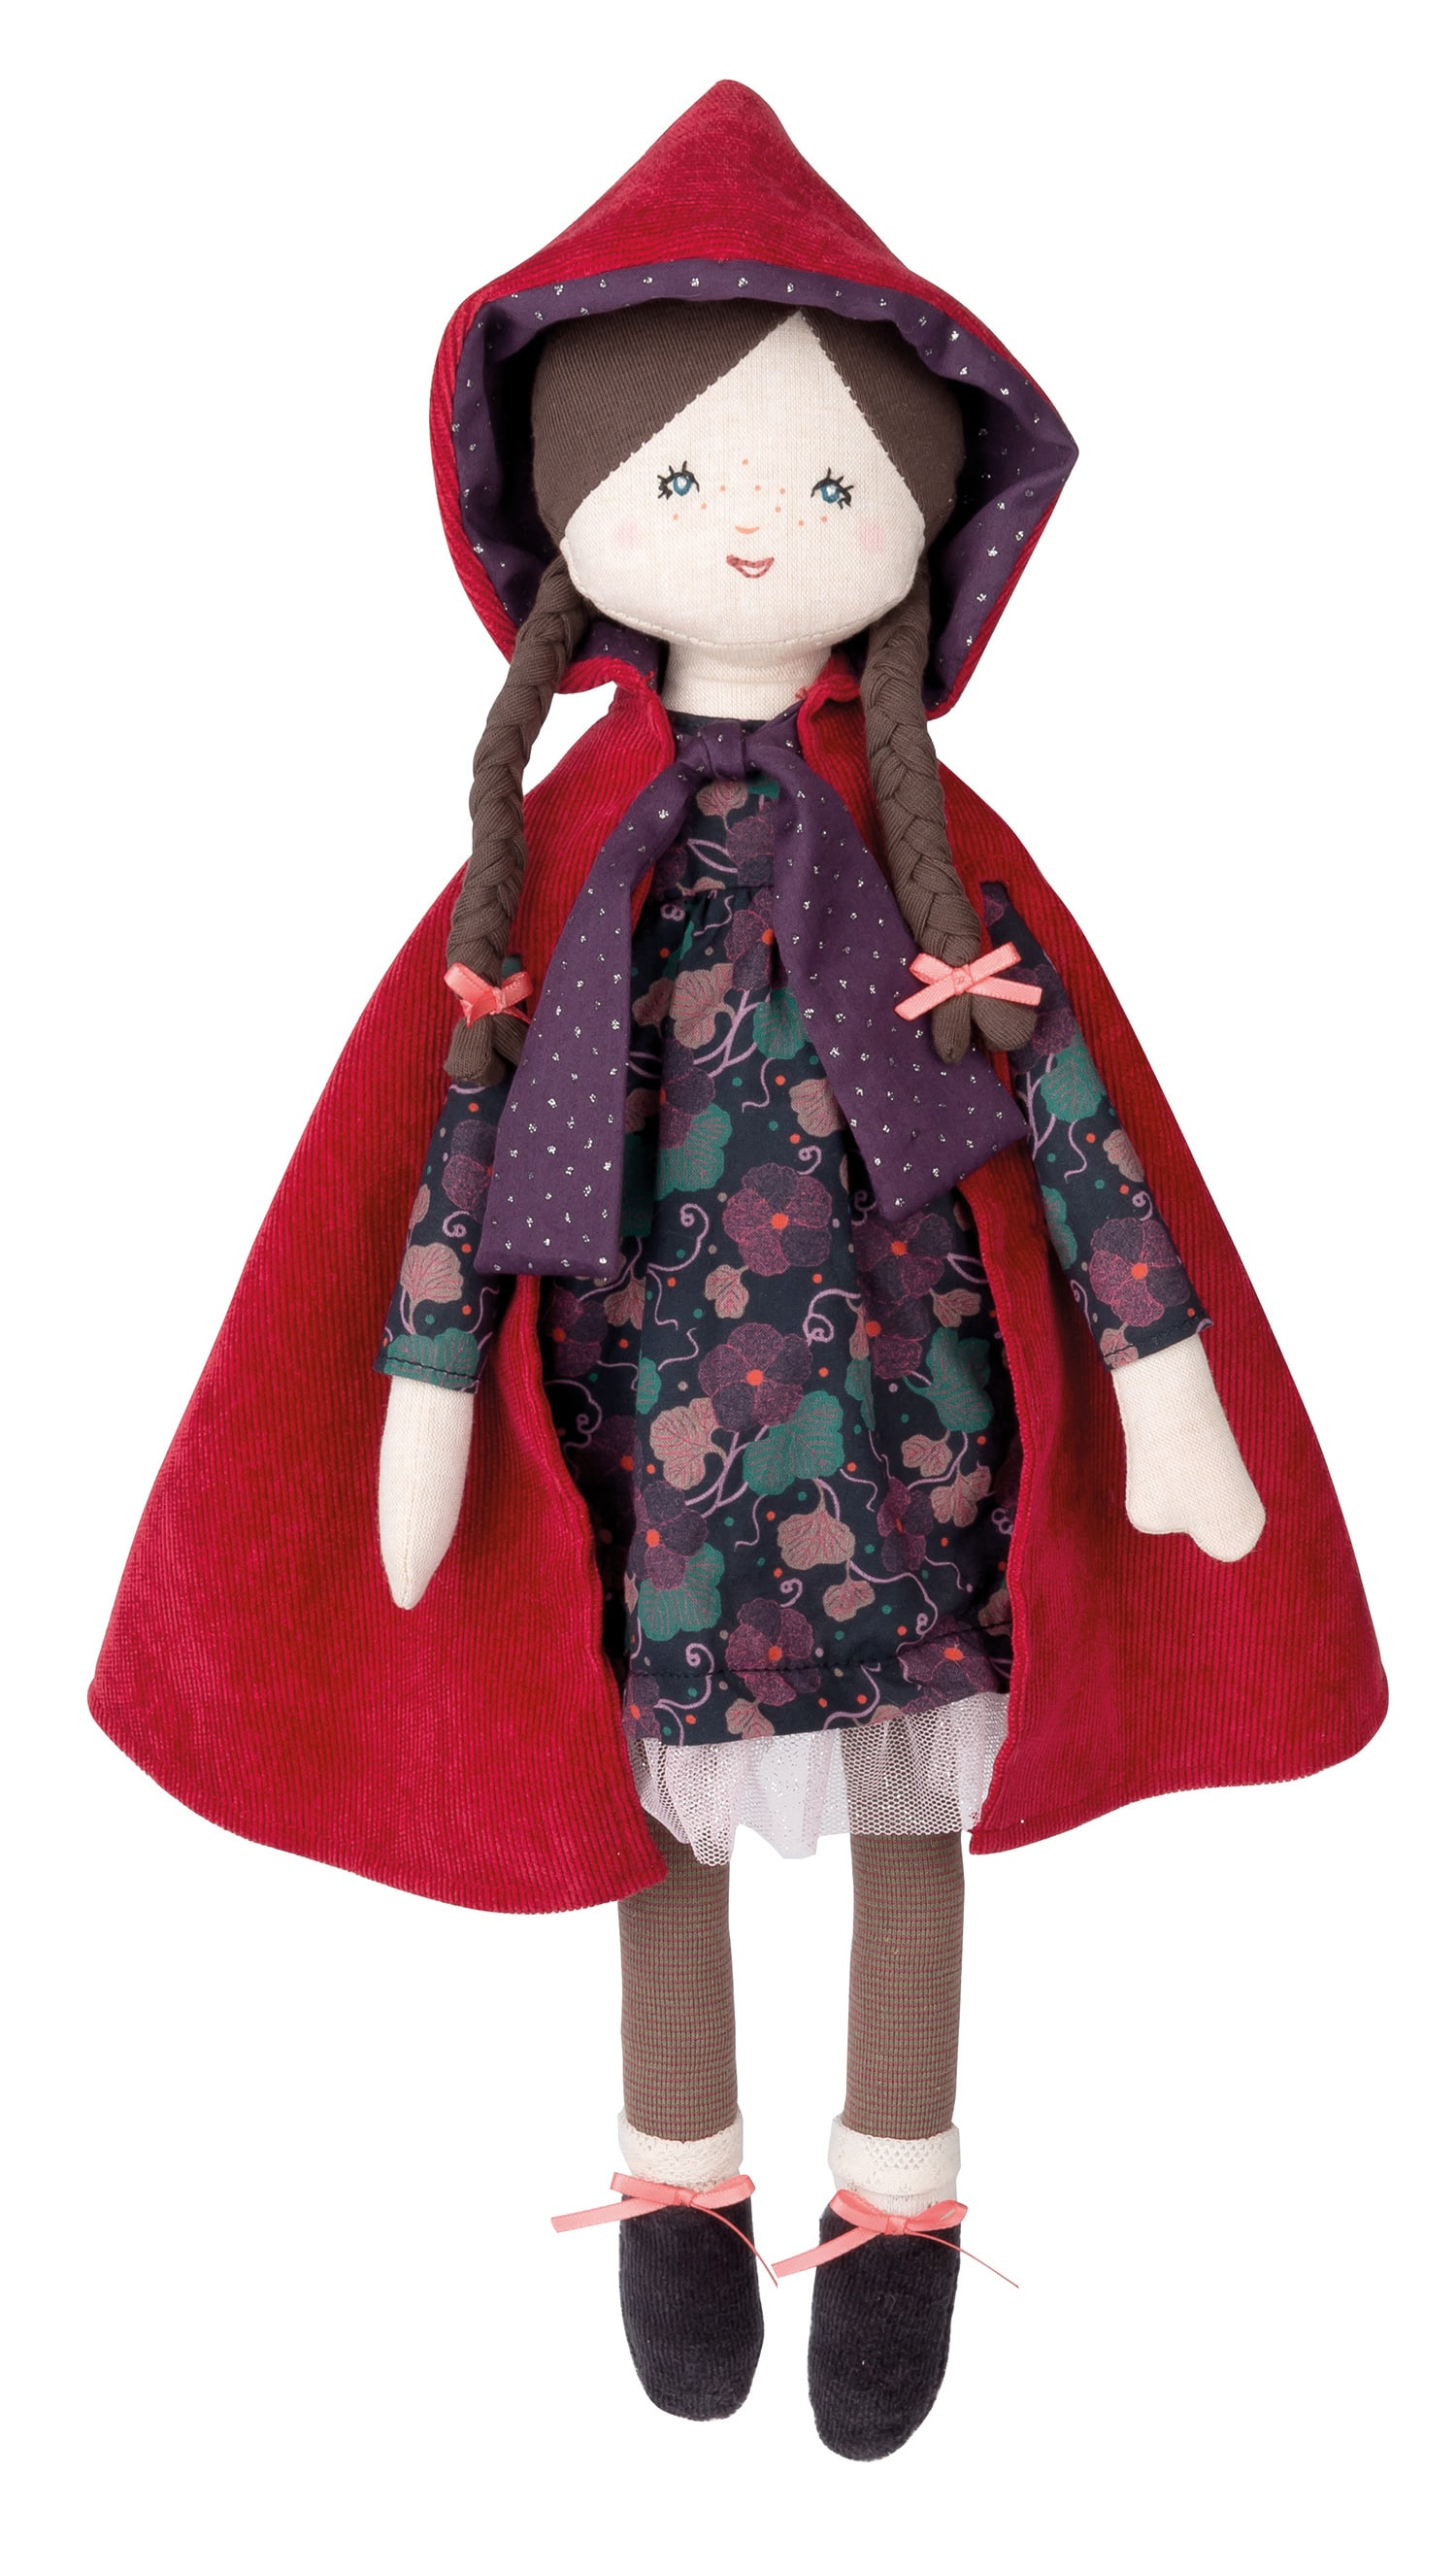 little red riding hood doll, soft toy - Moulin Roty toys Australia